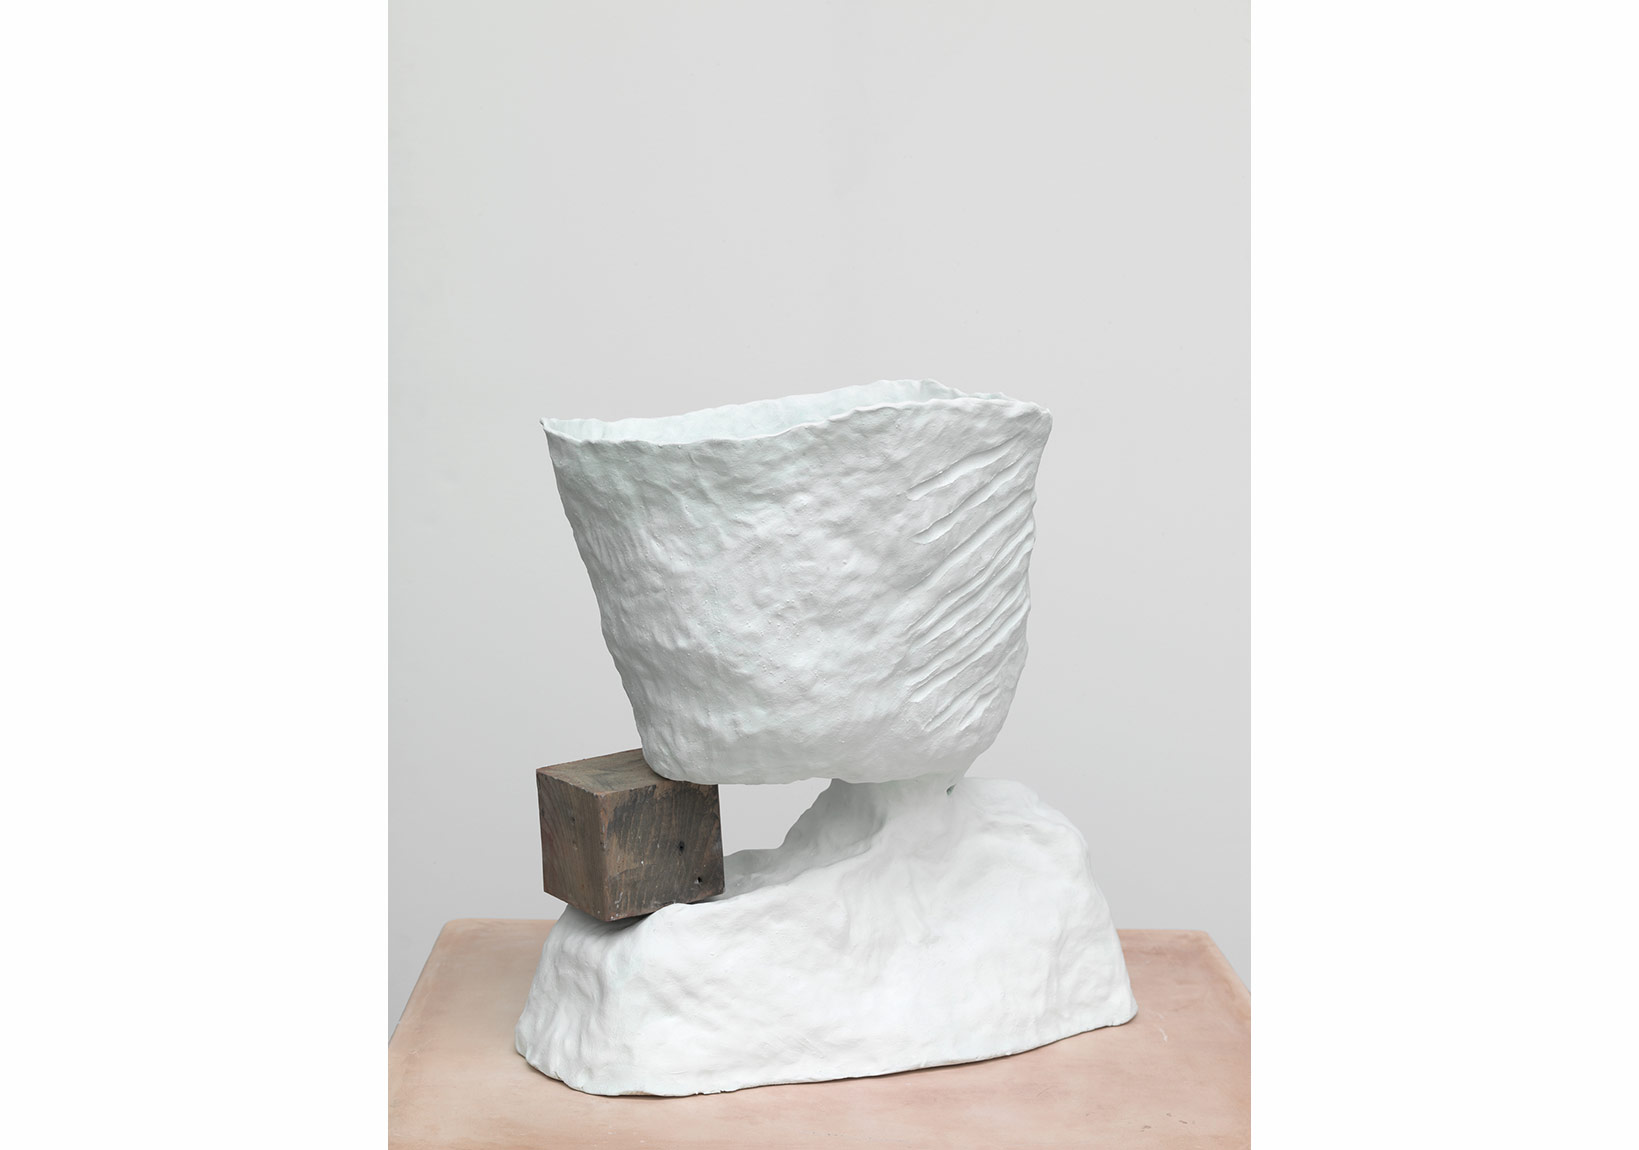 Katie Cuddon, Cool Speech, 2013, Painted ceramic, plaster, wood, 55 x 49 x 49 cm